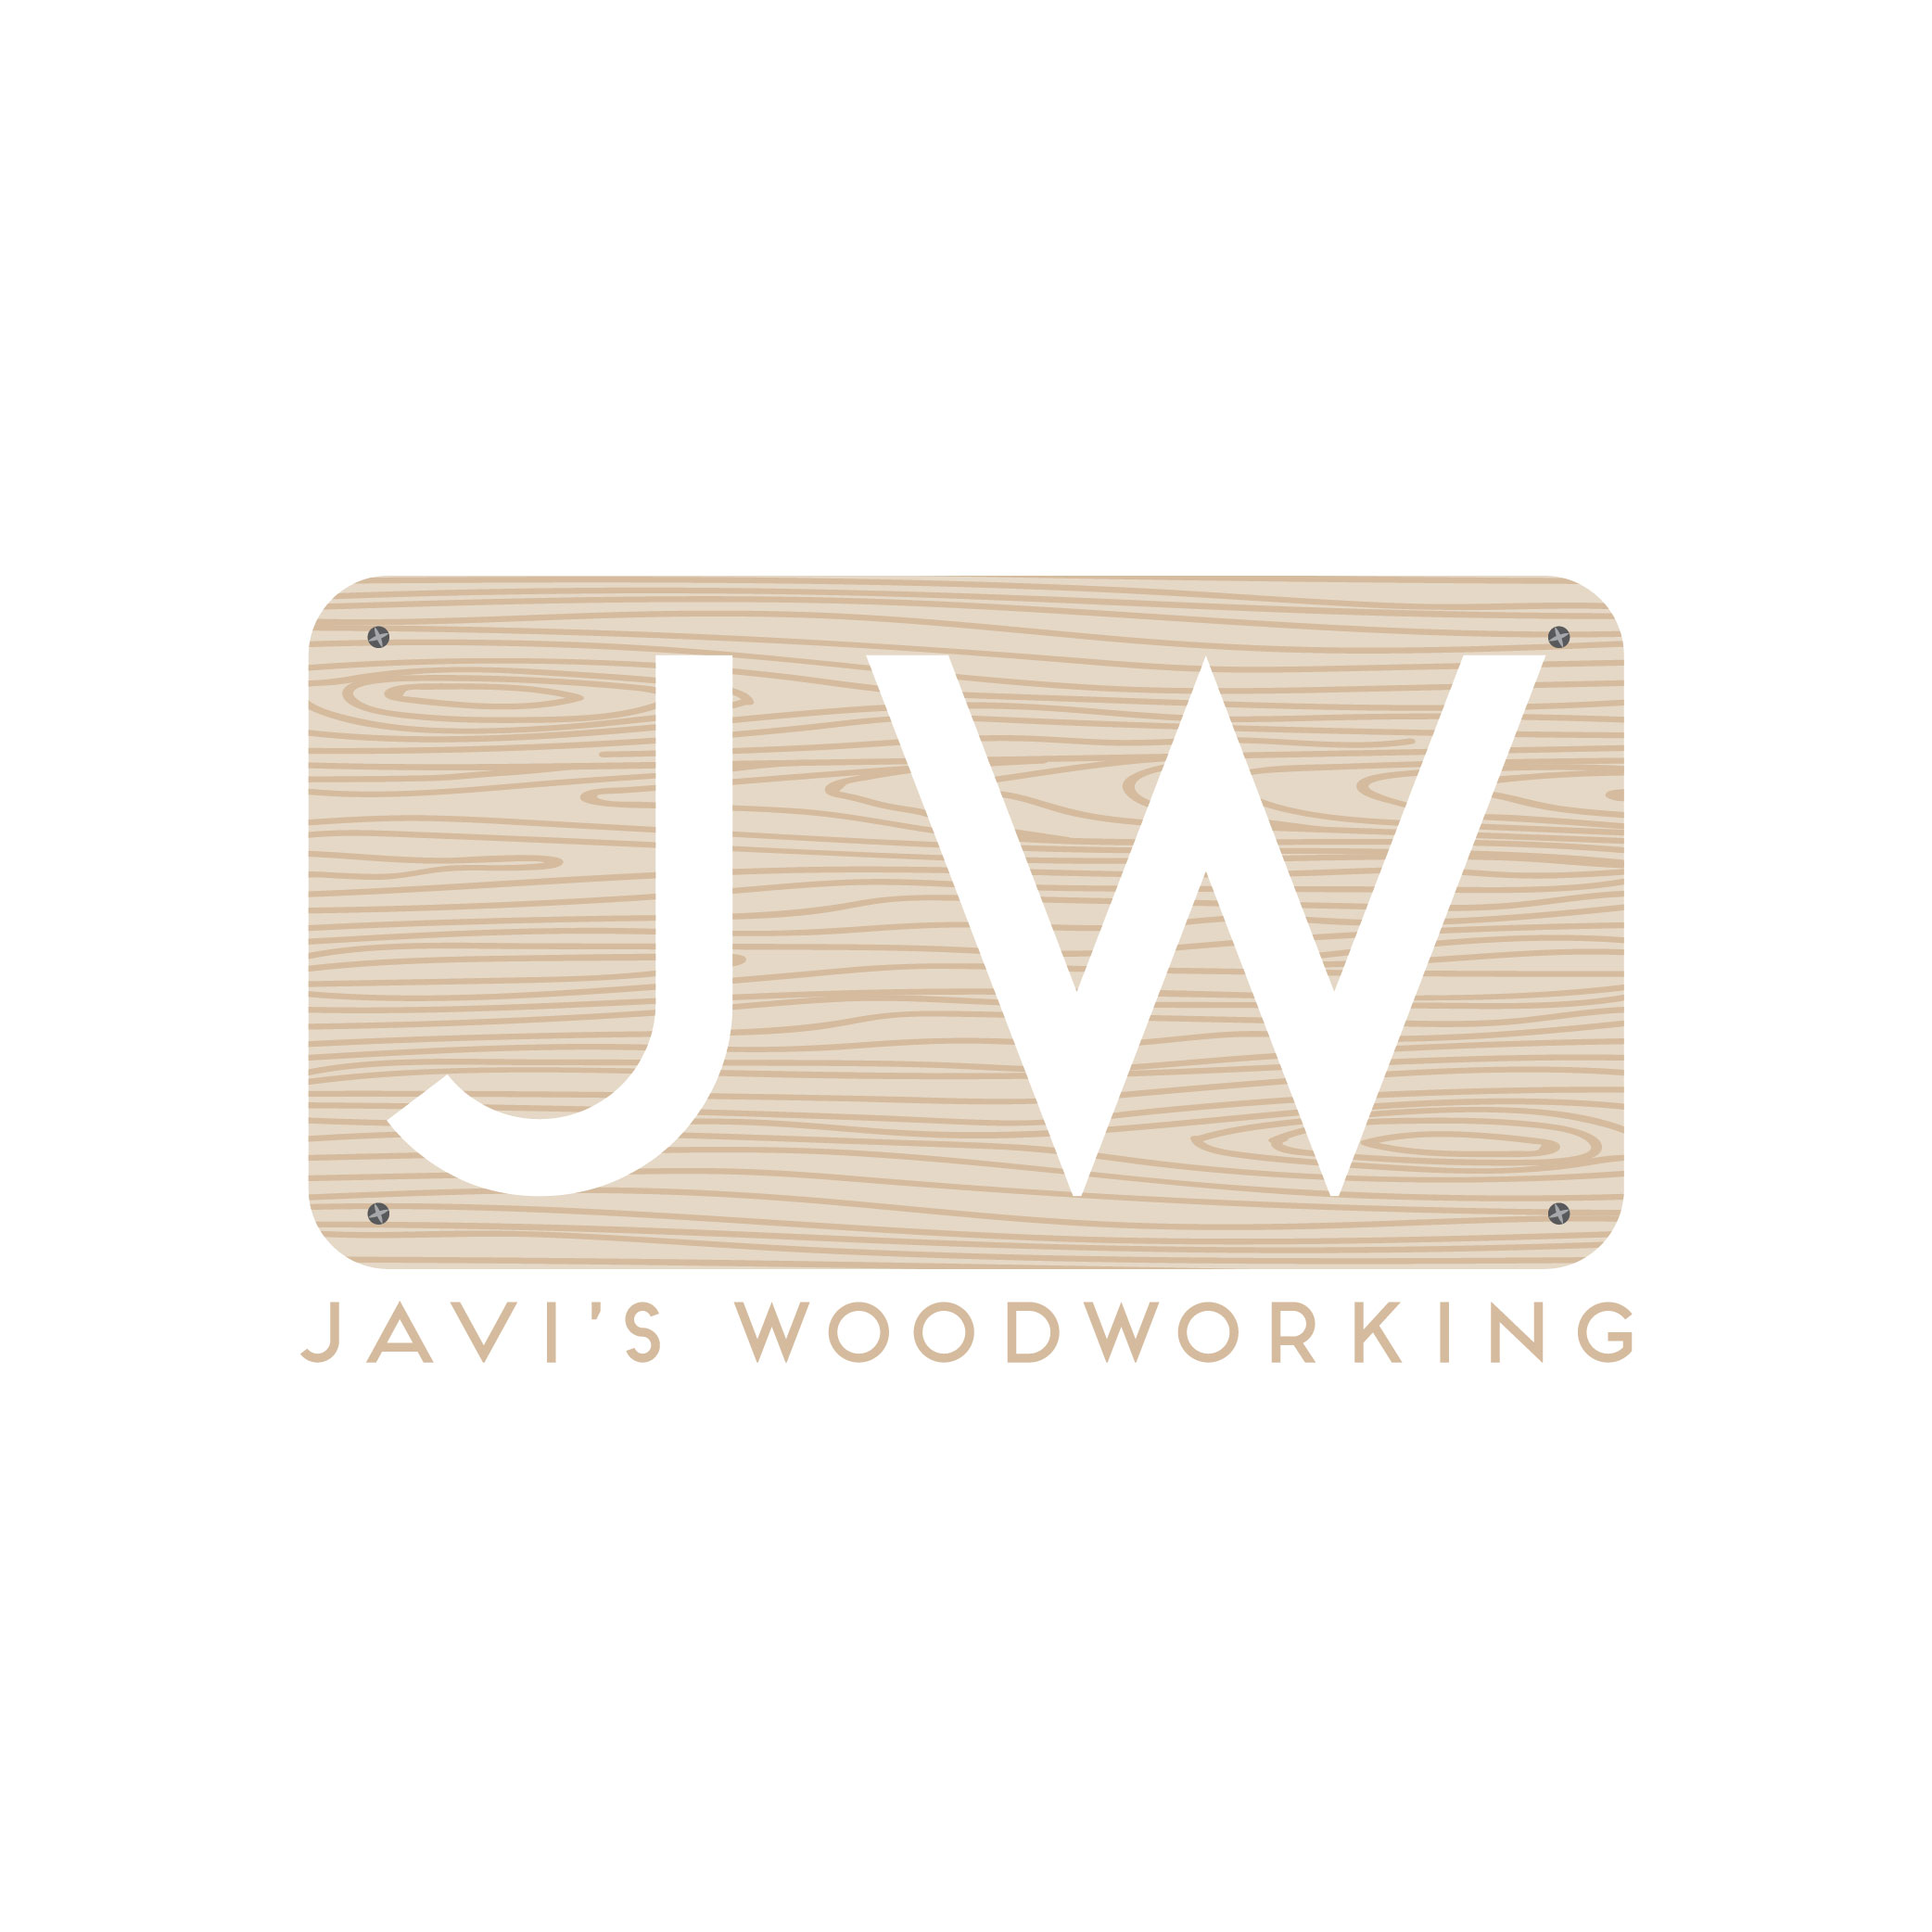 Talented woodworking company